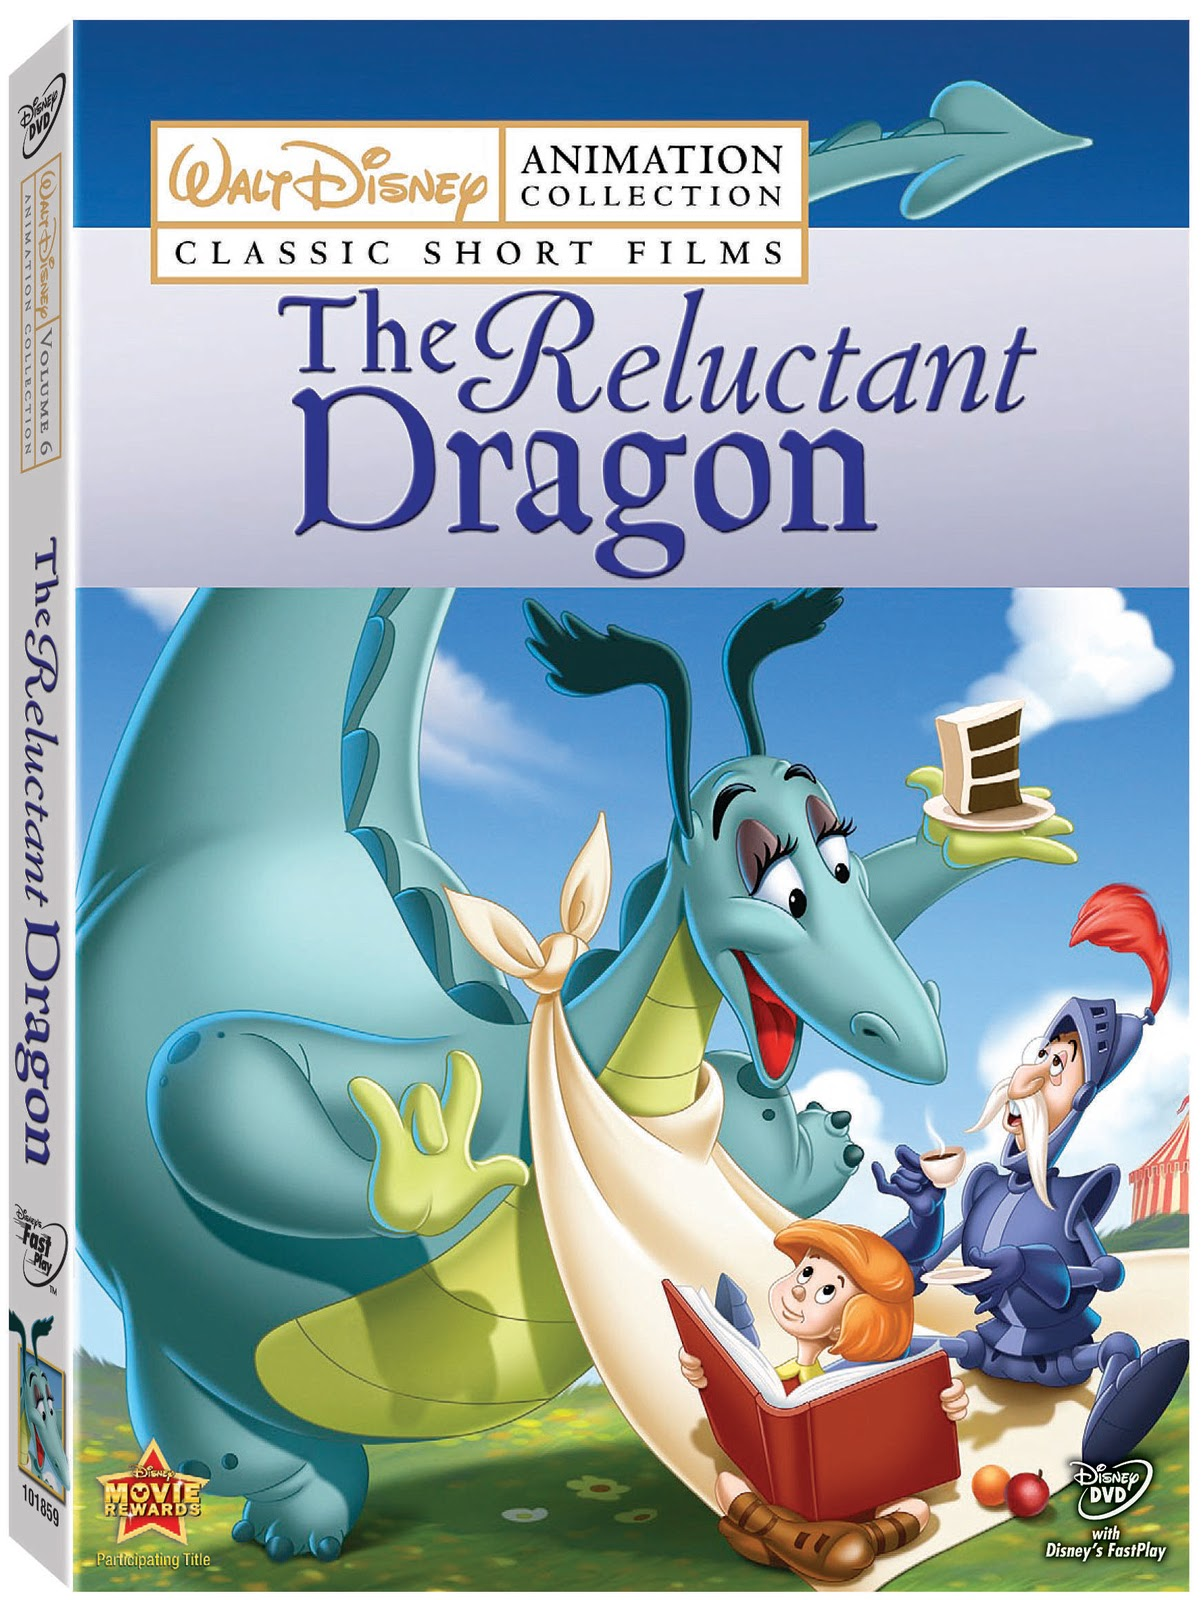 The Reluctant Dragon movie